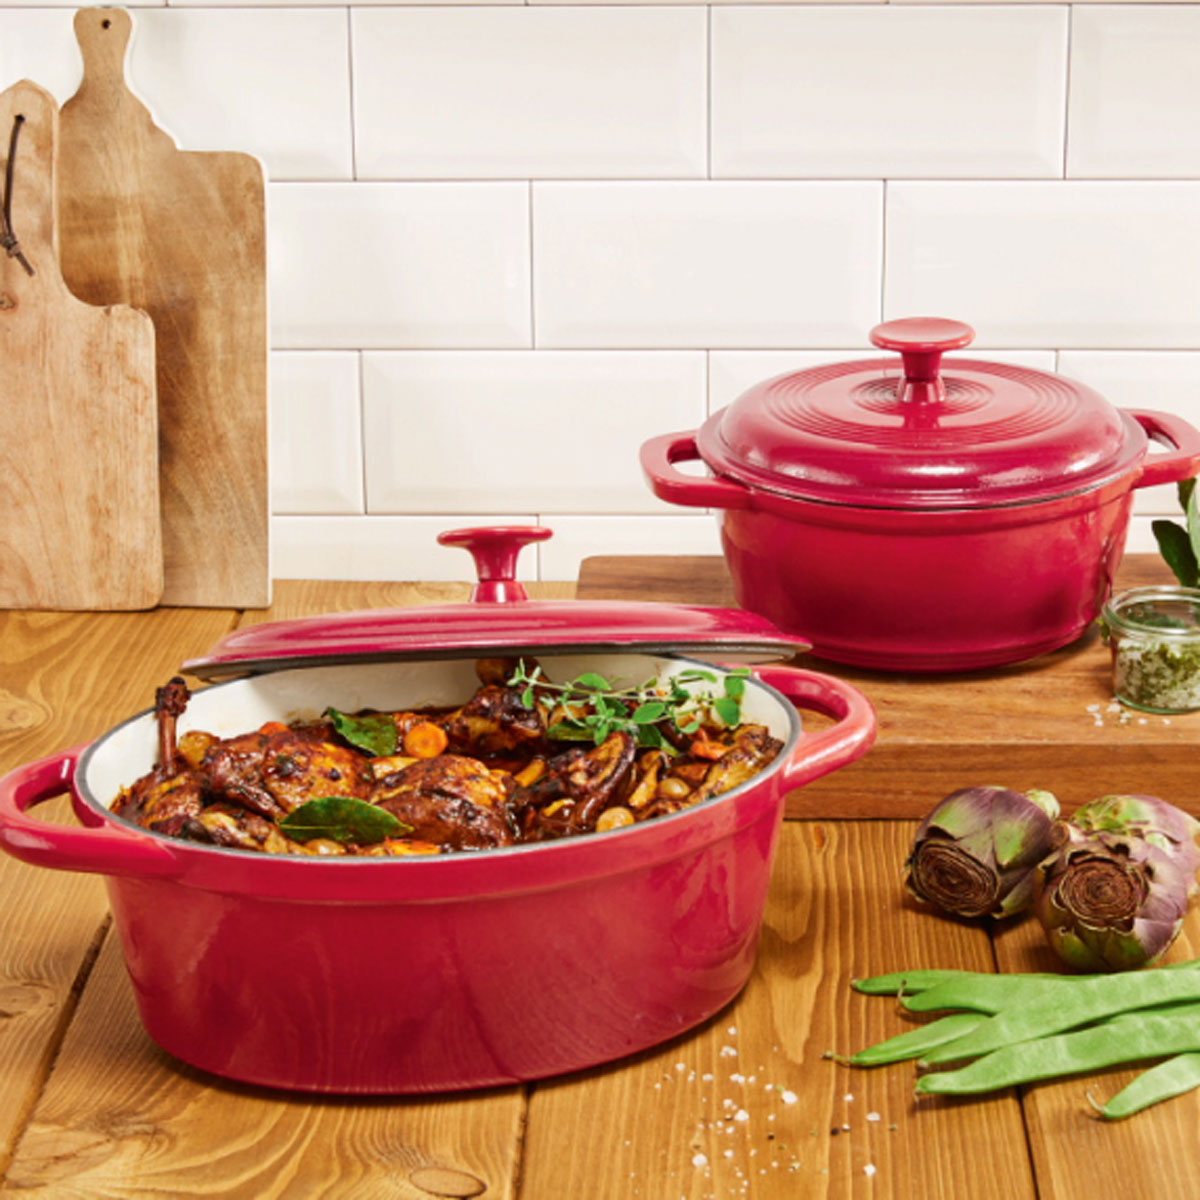 Lidl's Dutch Ovens Look Exactly Like Le Creuset's—but They're Only $20